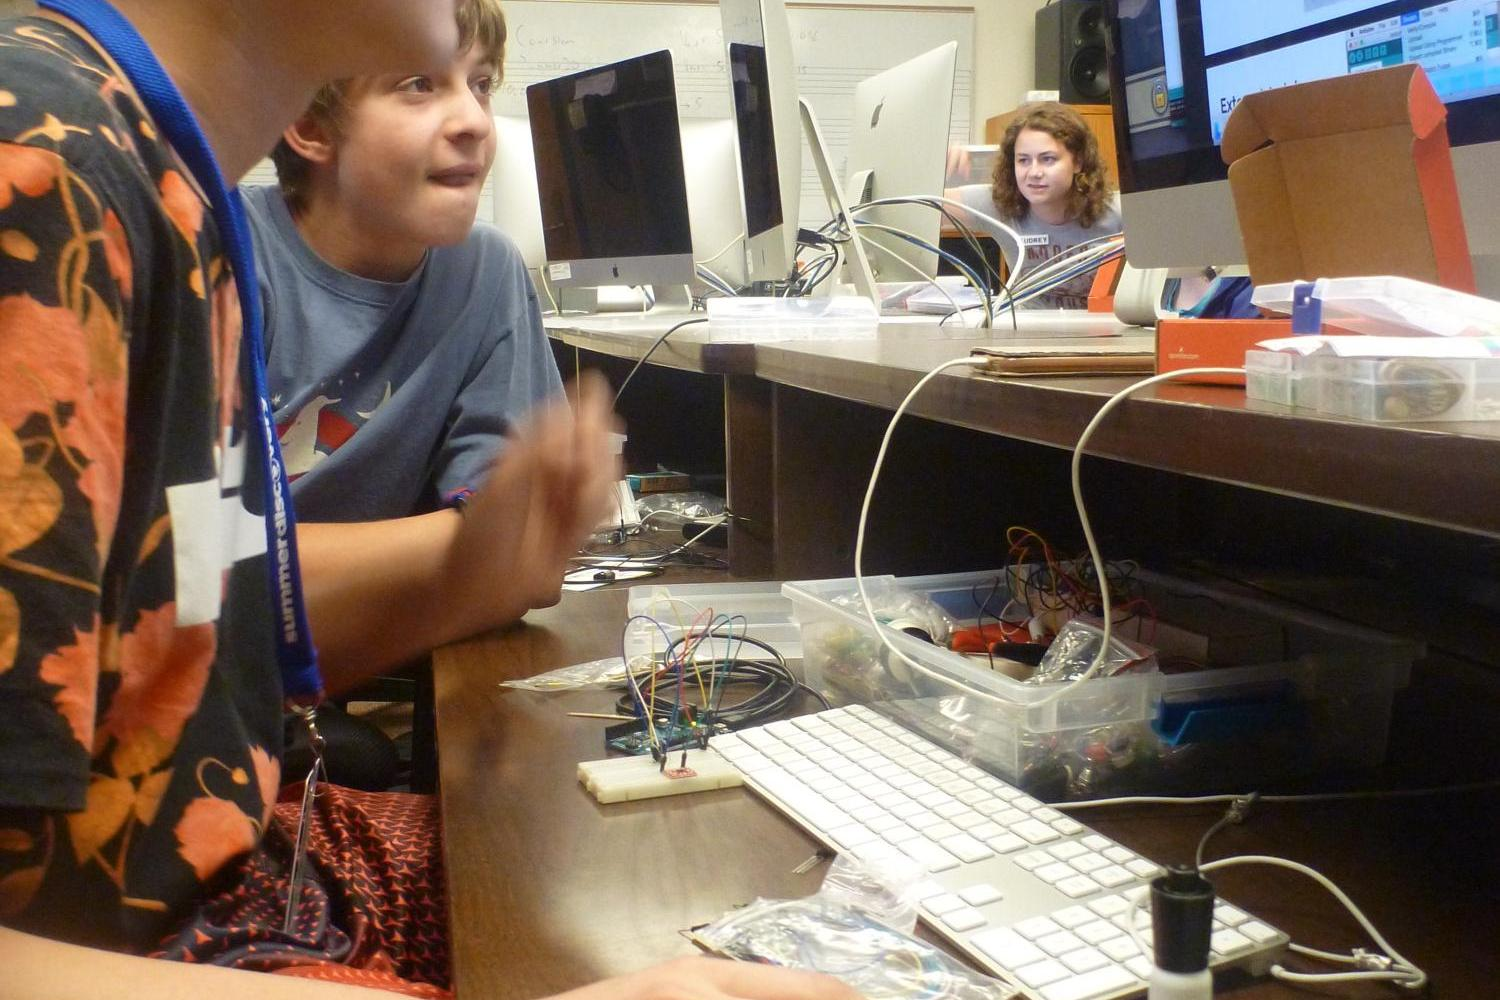 Student working on computer with arduino